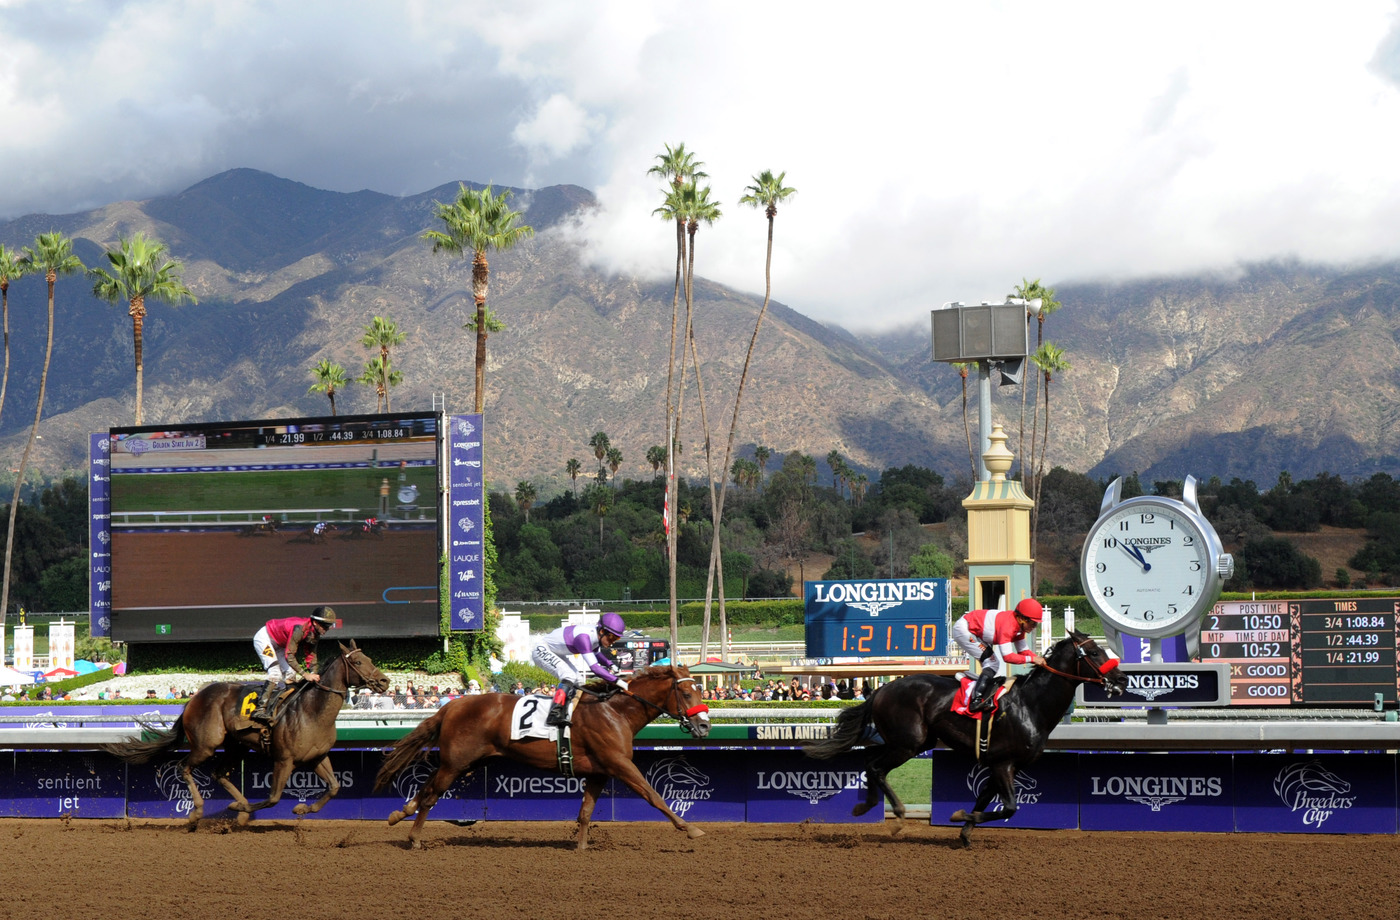 Longines Flat Racing Event: Longines Times the Breeders' Cup World Championships 1